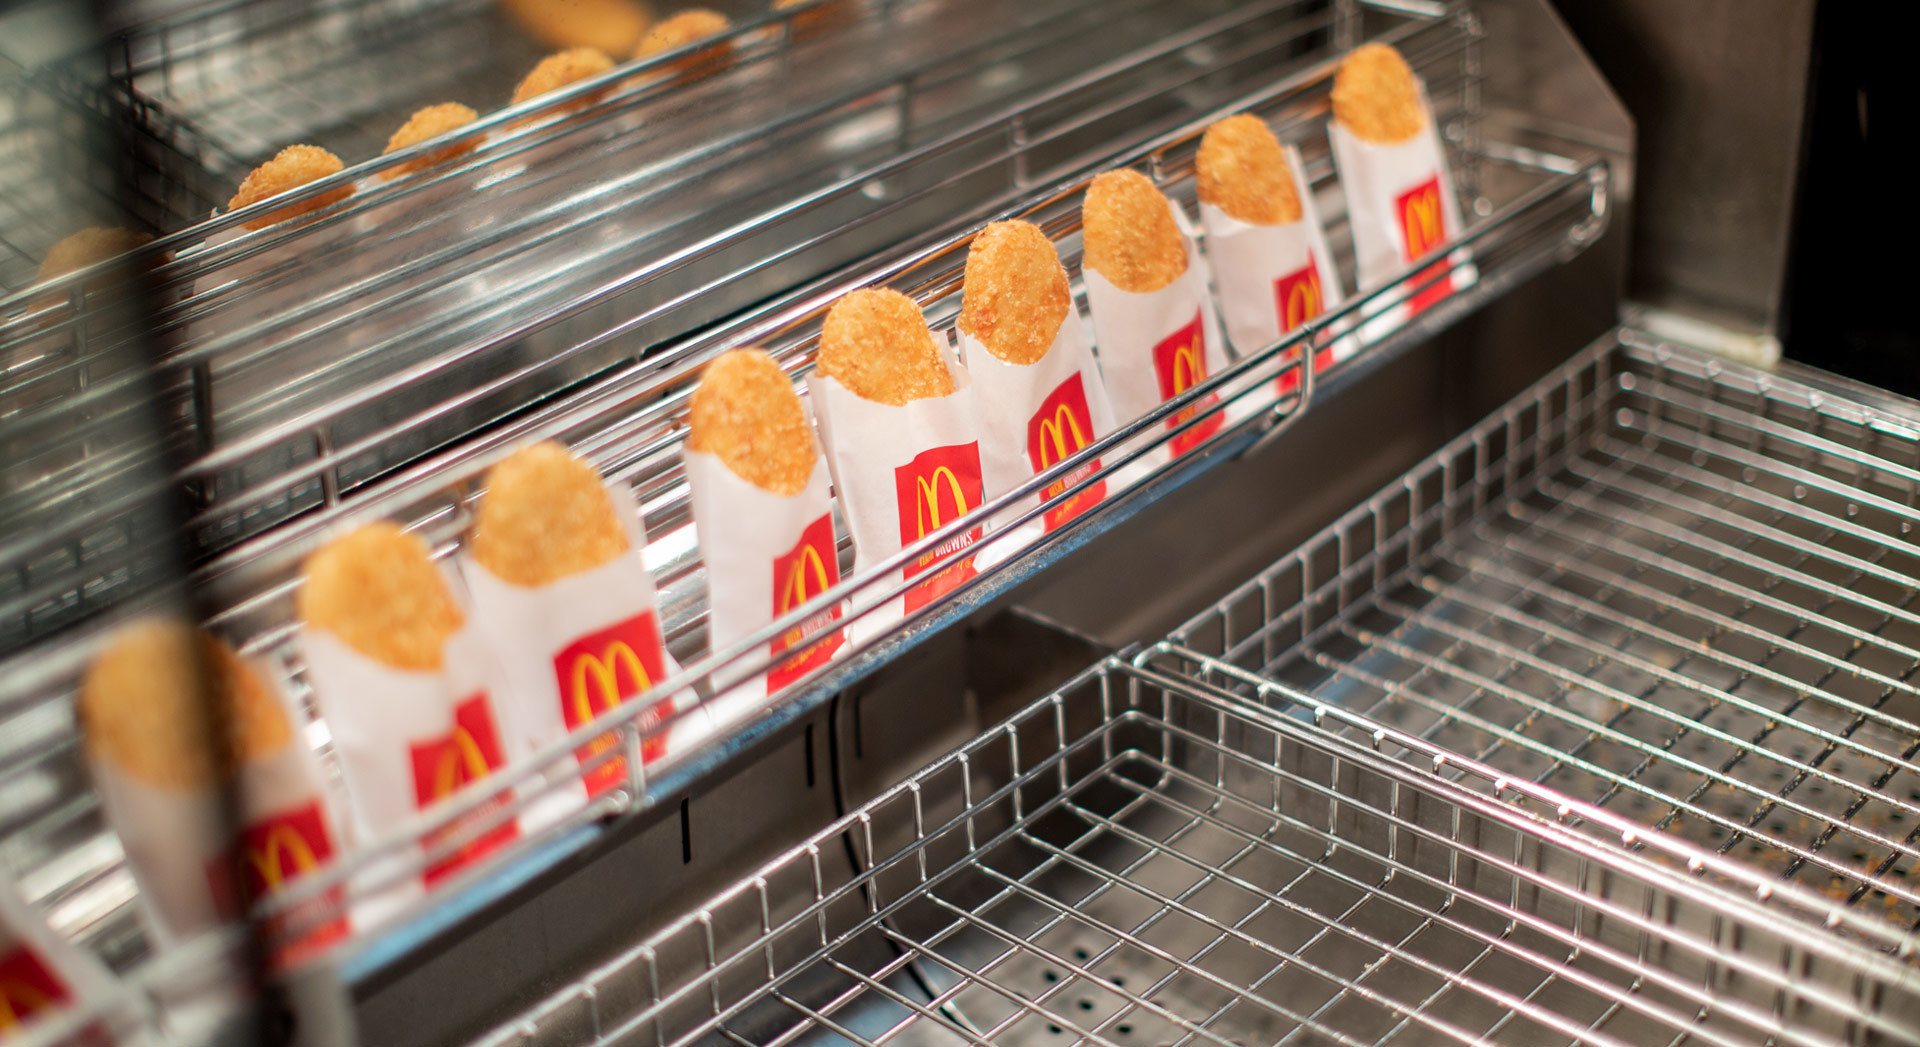 Know Our Food - Why are McDonald's hashbrowns sometimes soggy?